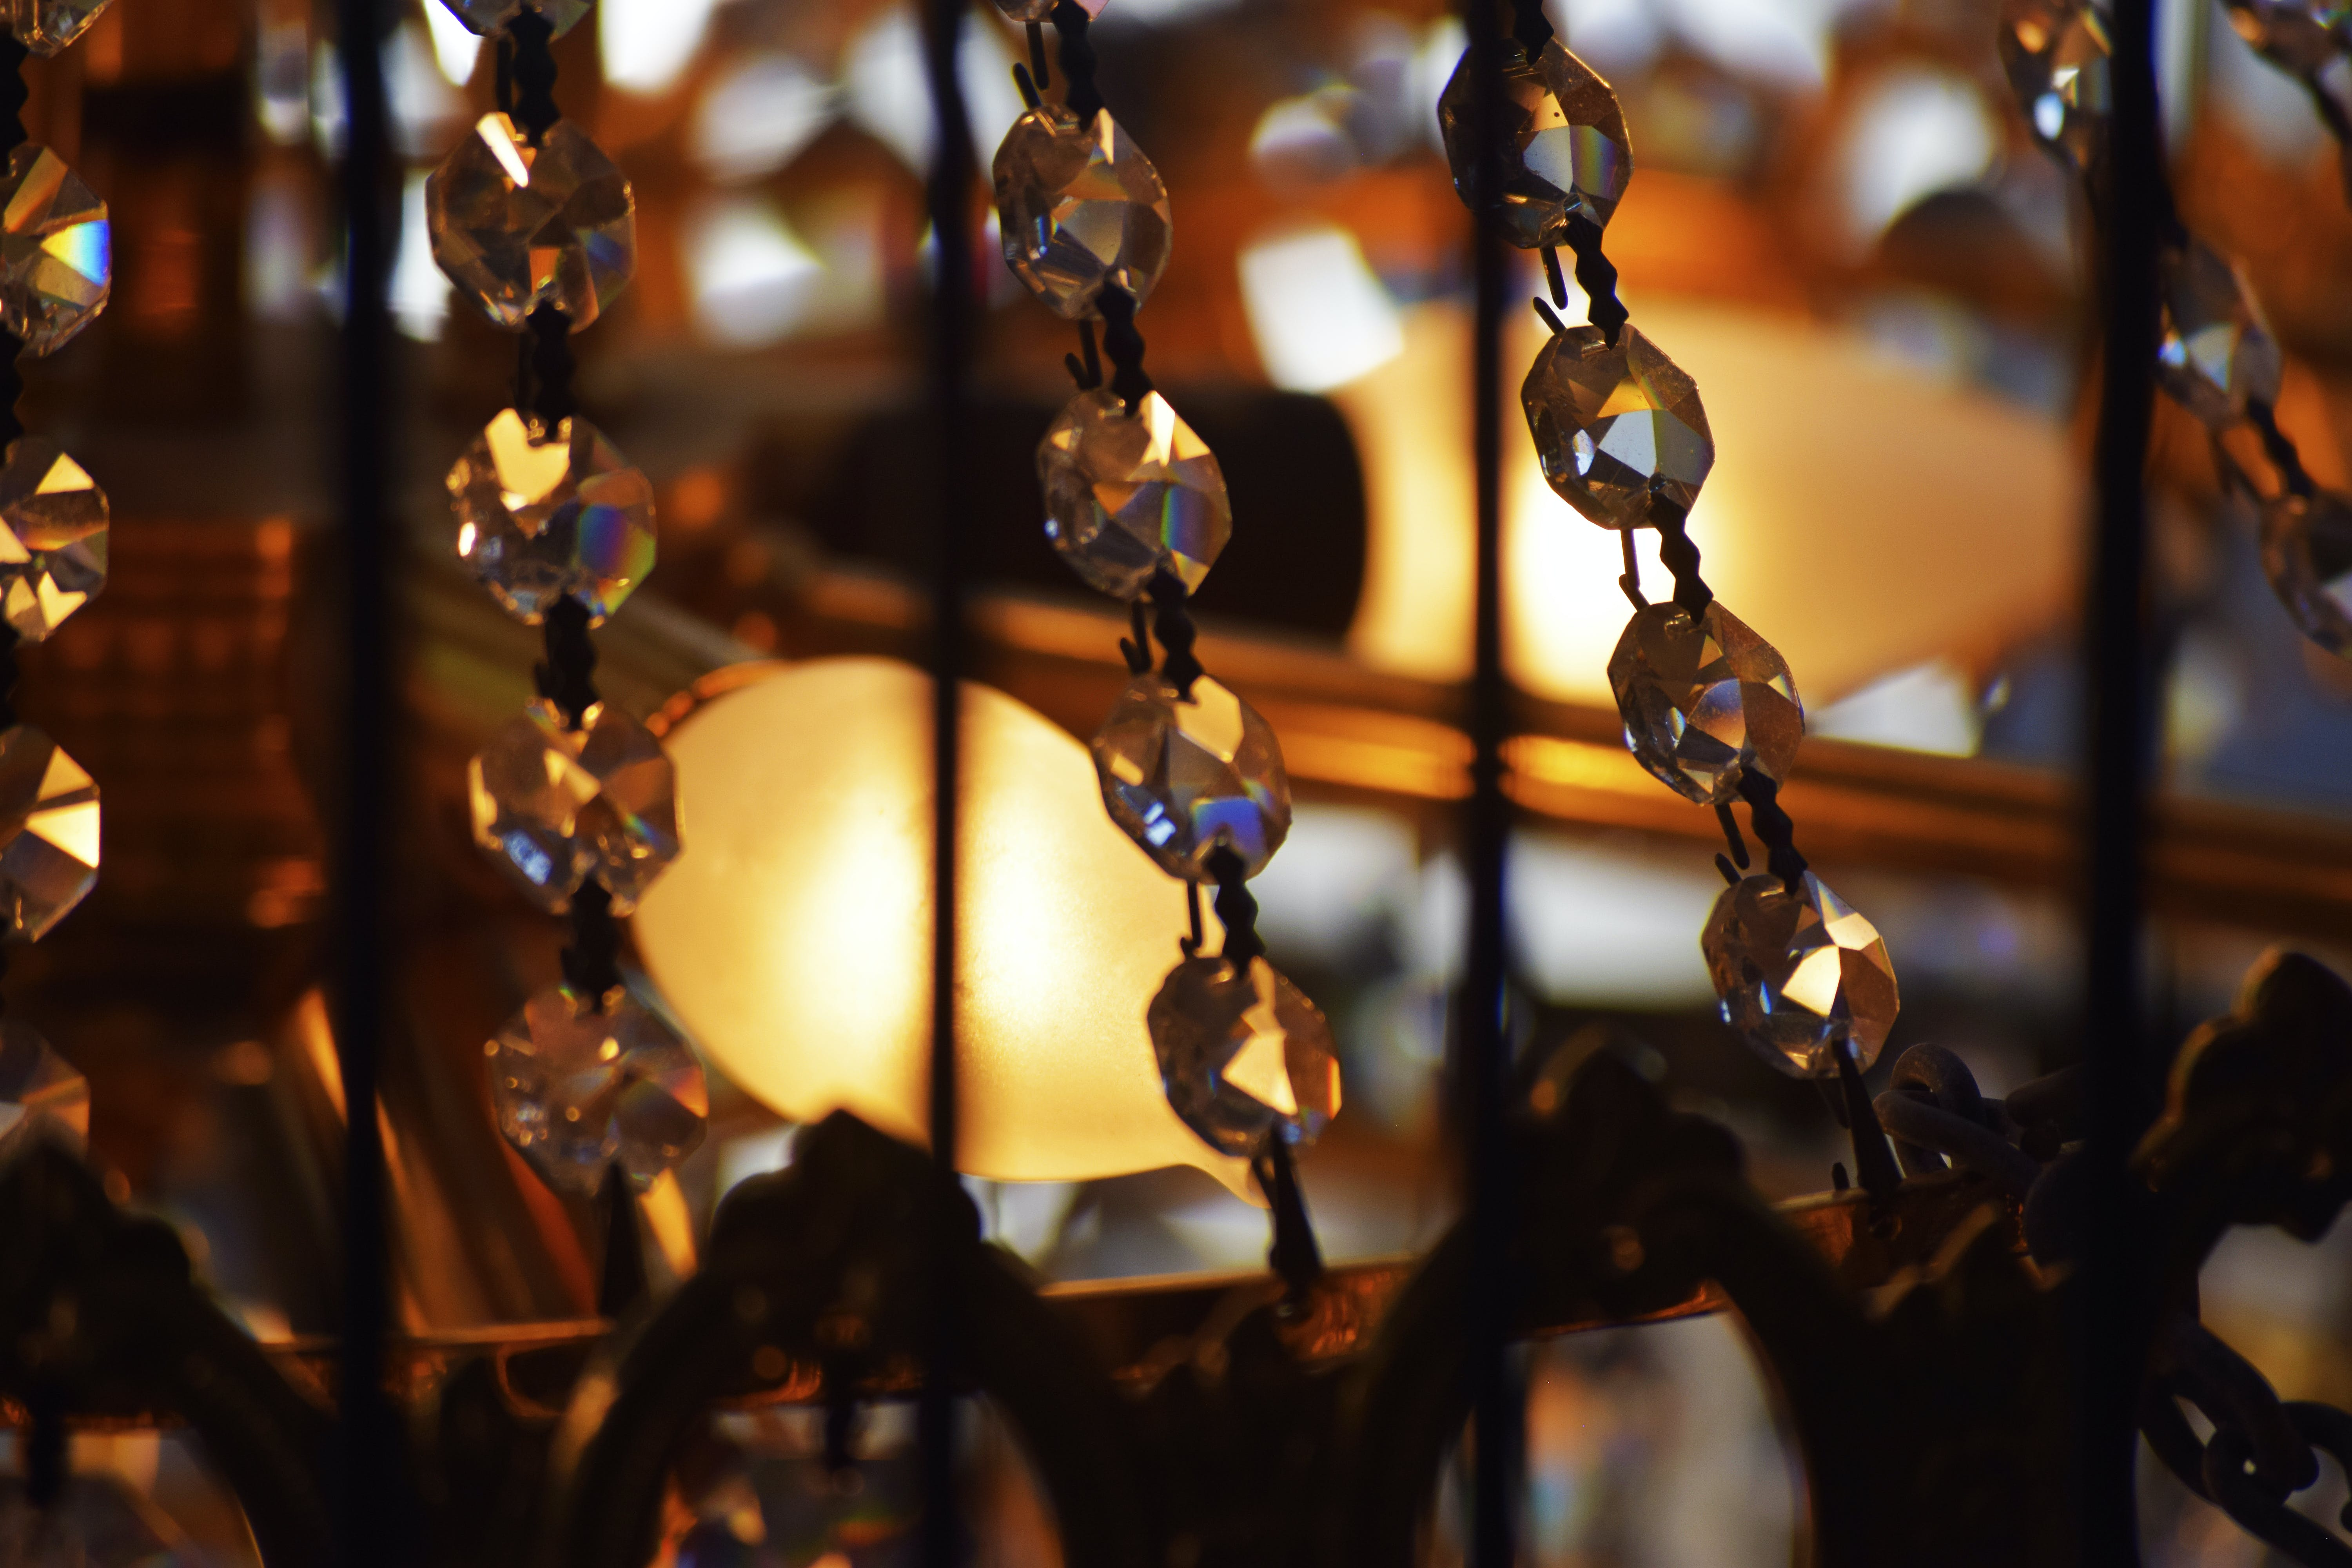 Free stock photo of beautiful, bulb, chandelier, crystal